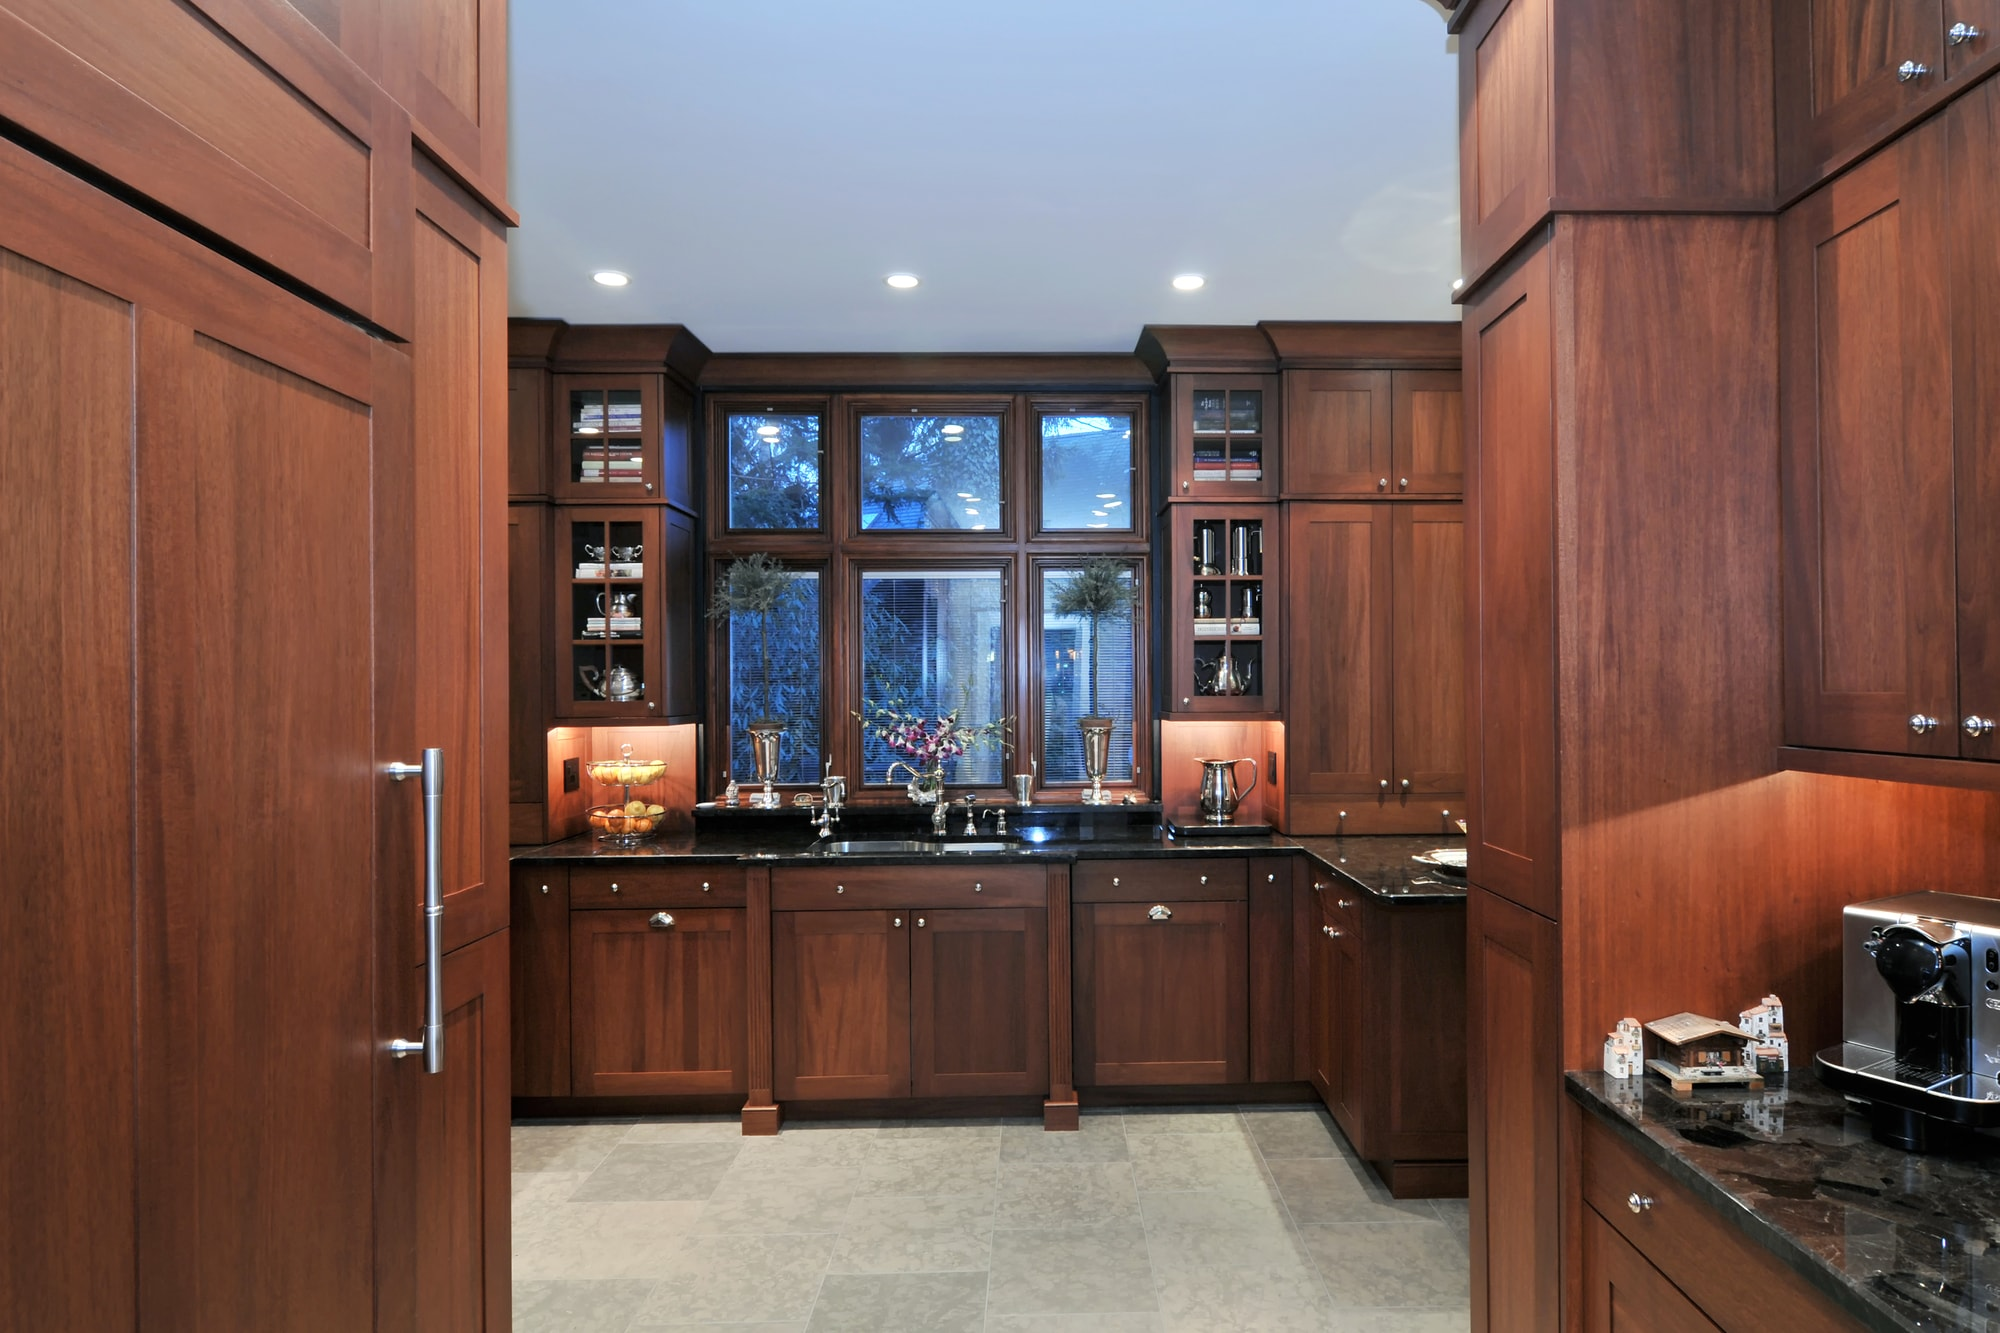 Transitional style kitchen with wooden storage